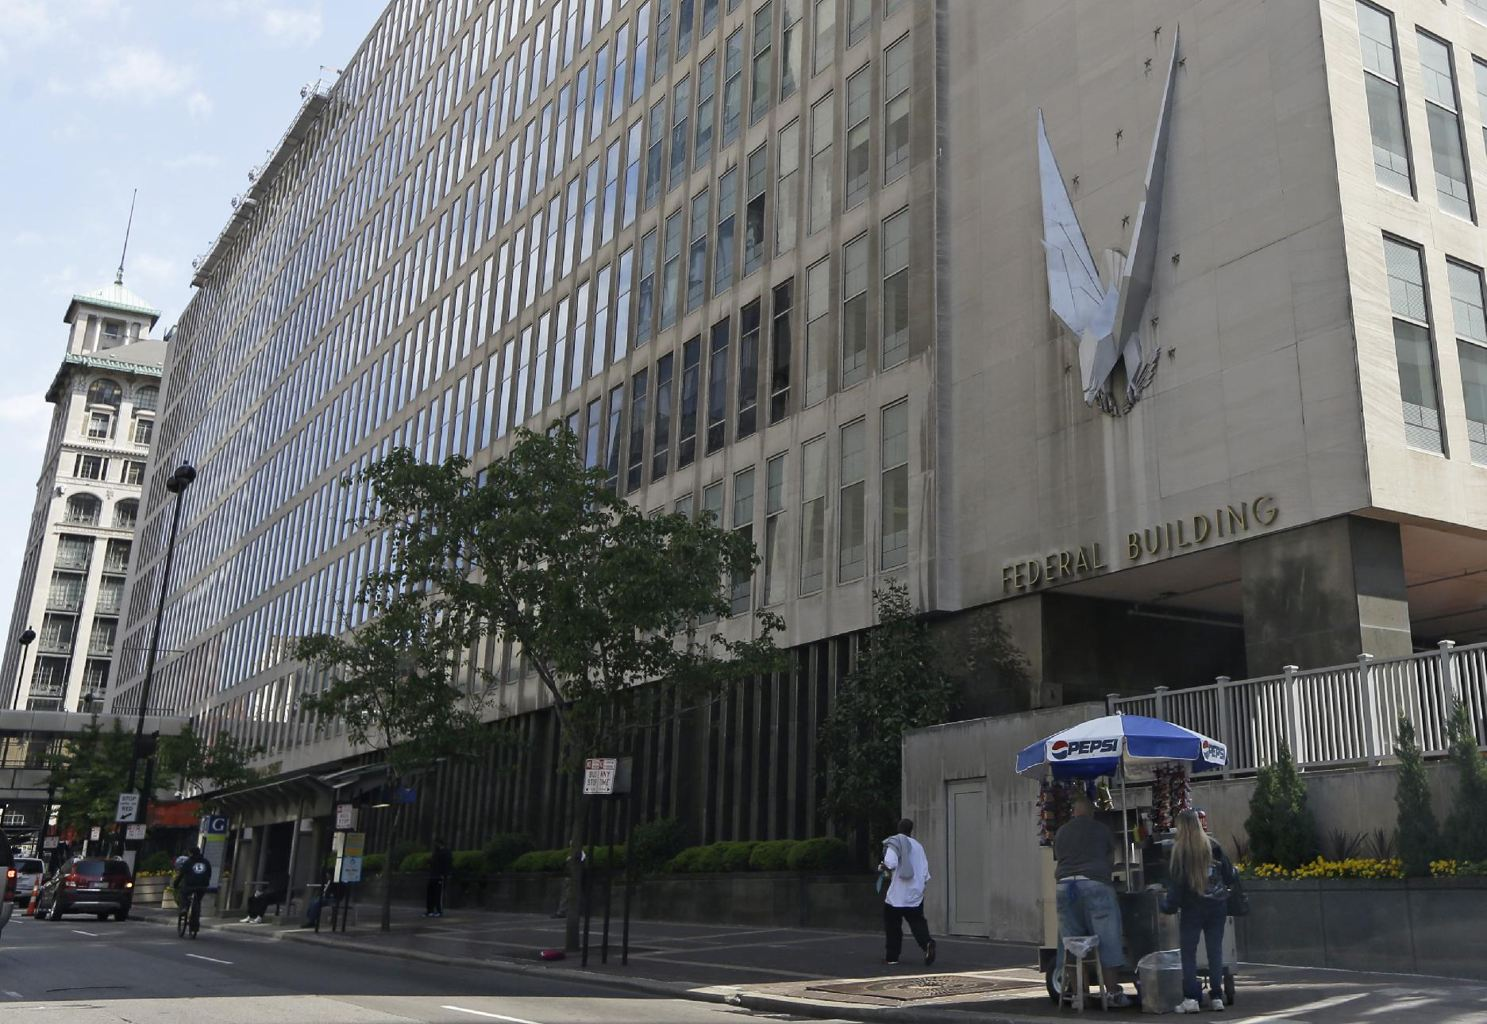 The John Weld Peck Federal Building, shown Tuesday, May 14, 2013, in Cincinnati, houses the main offices for the Internal Revenue Service in the city. (AP Photo/Al Behrman